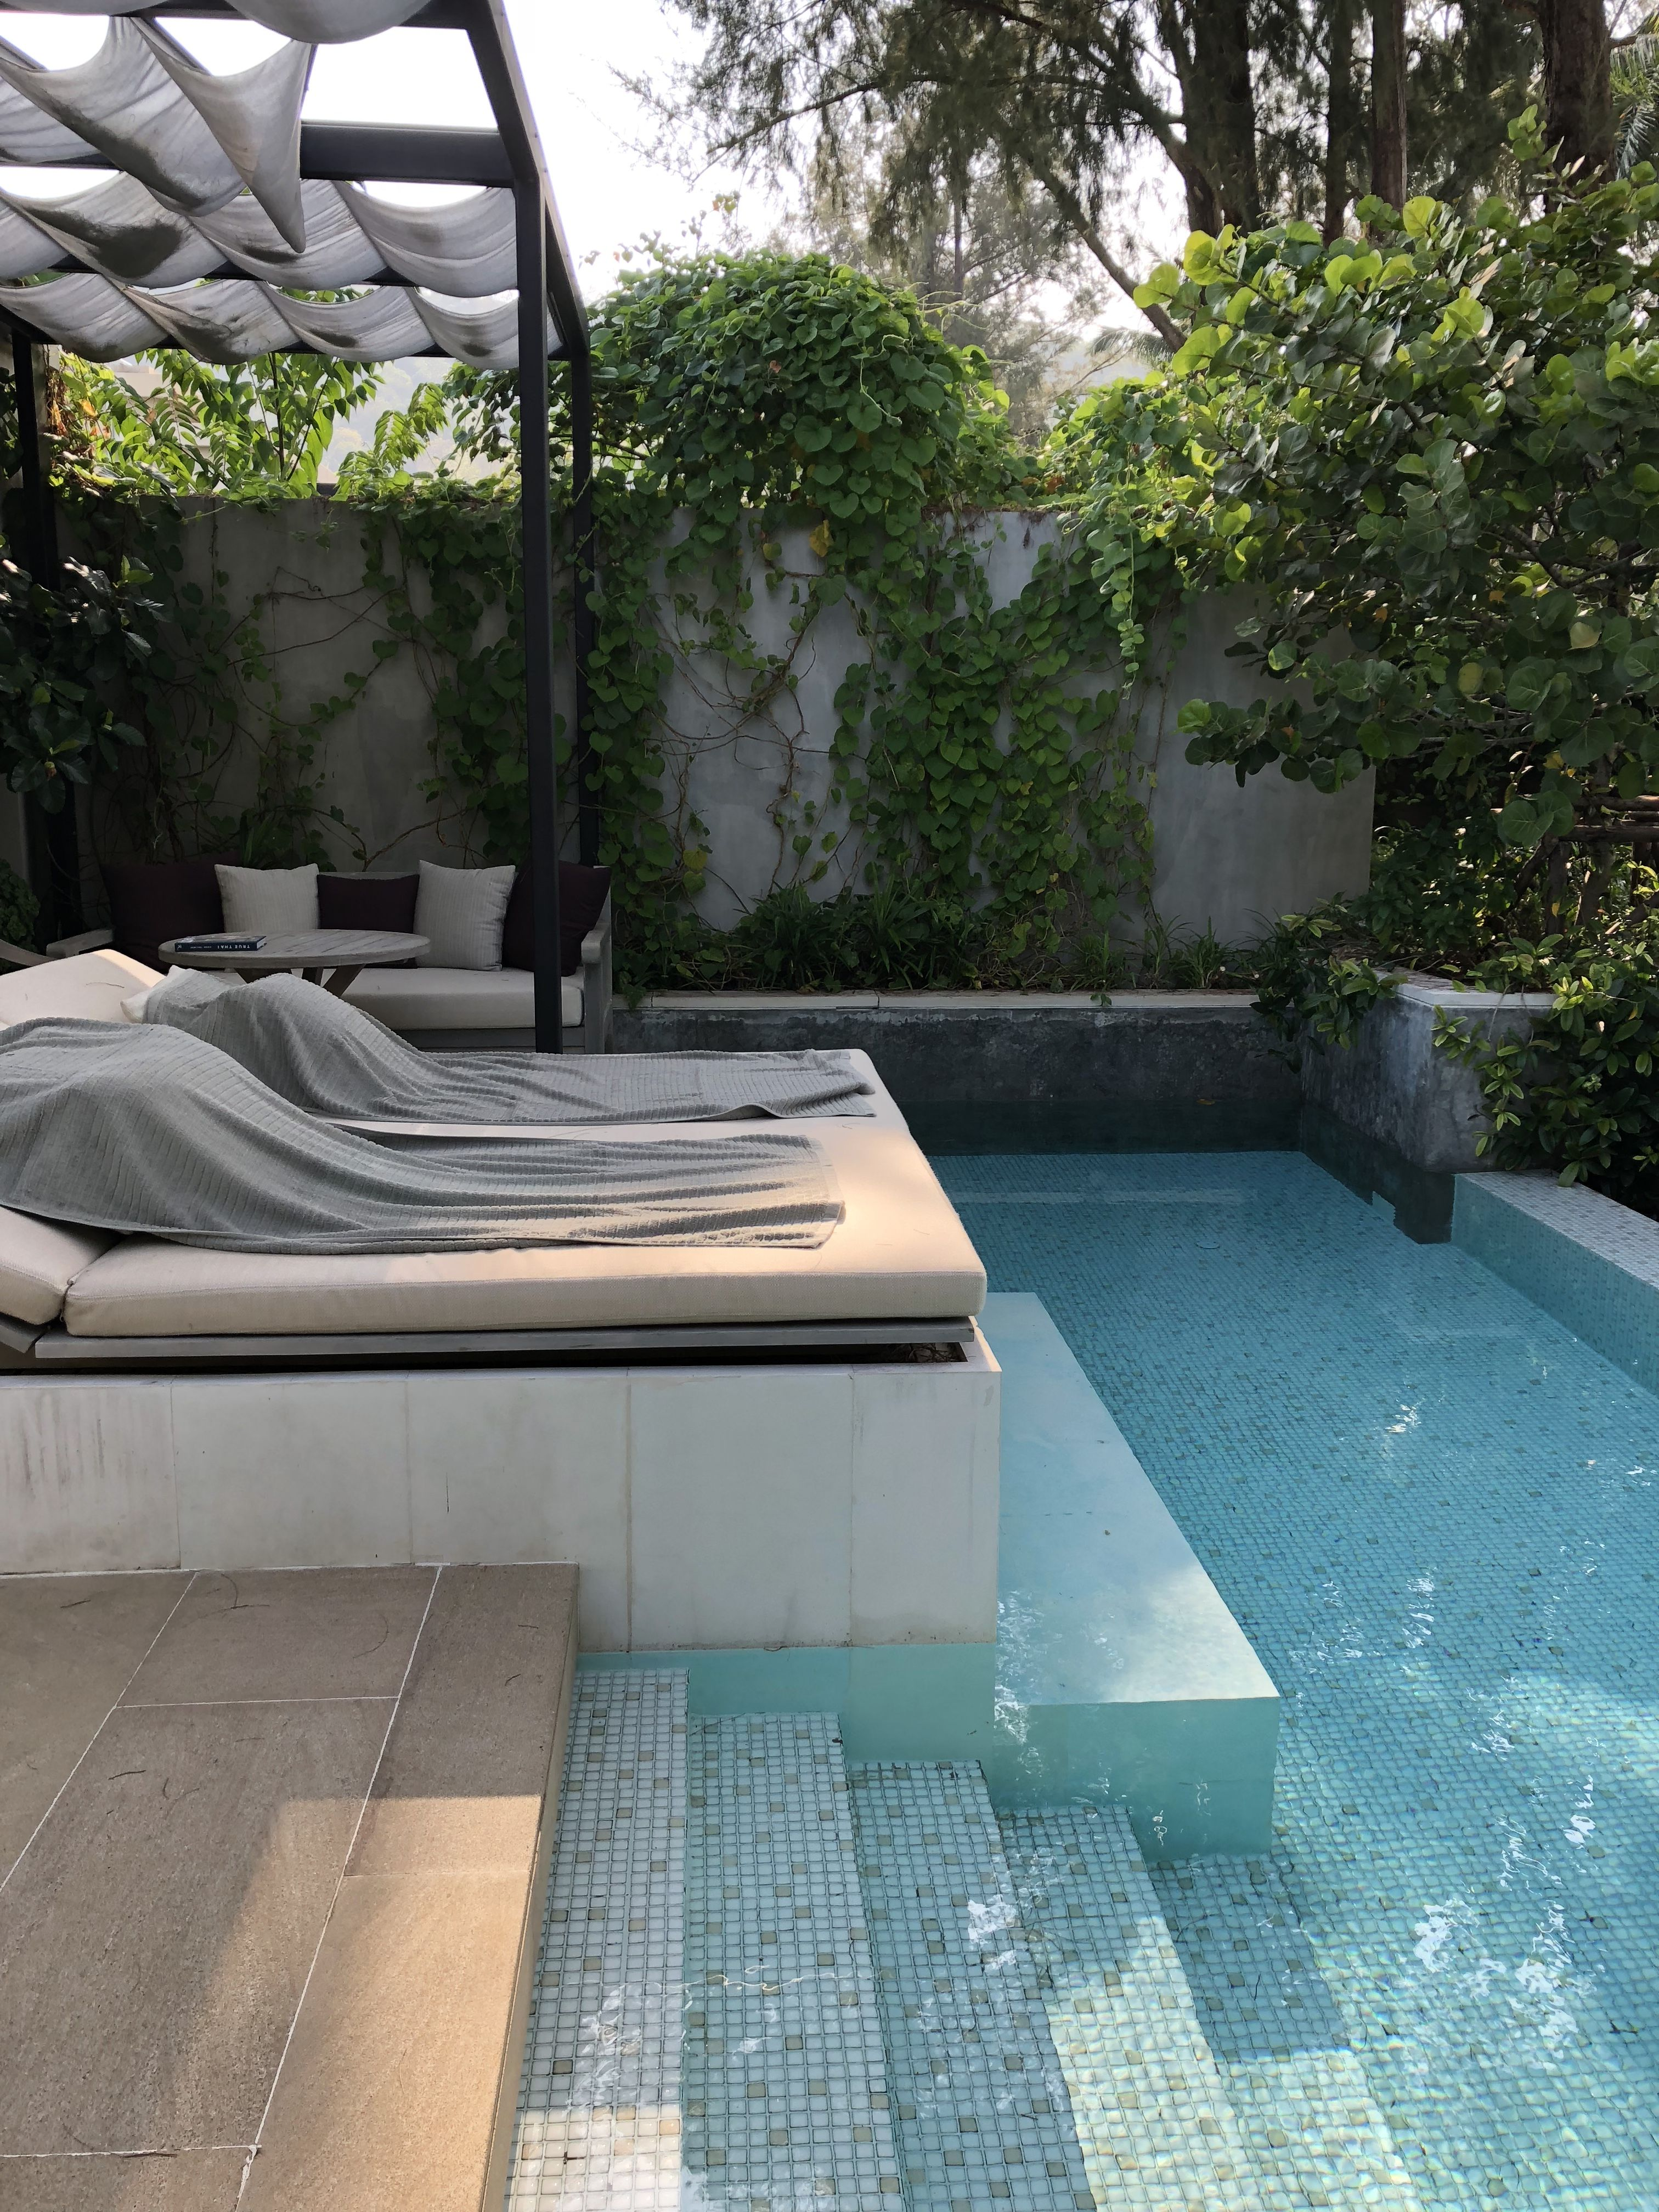 Pool Bauen In Thailand I Like The Idea Of Doing A Cabana Bed Like At Our Thailand Hotel